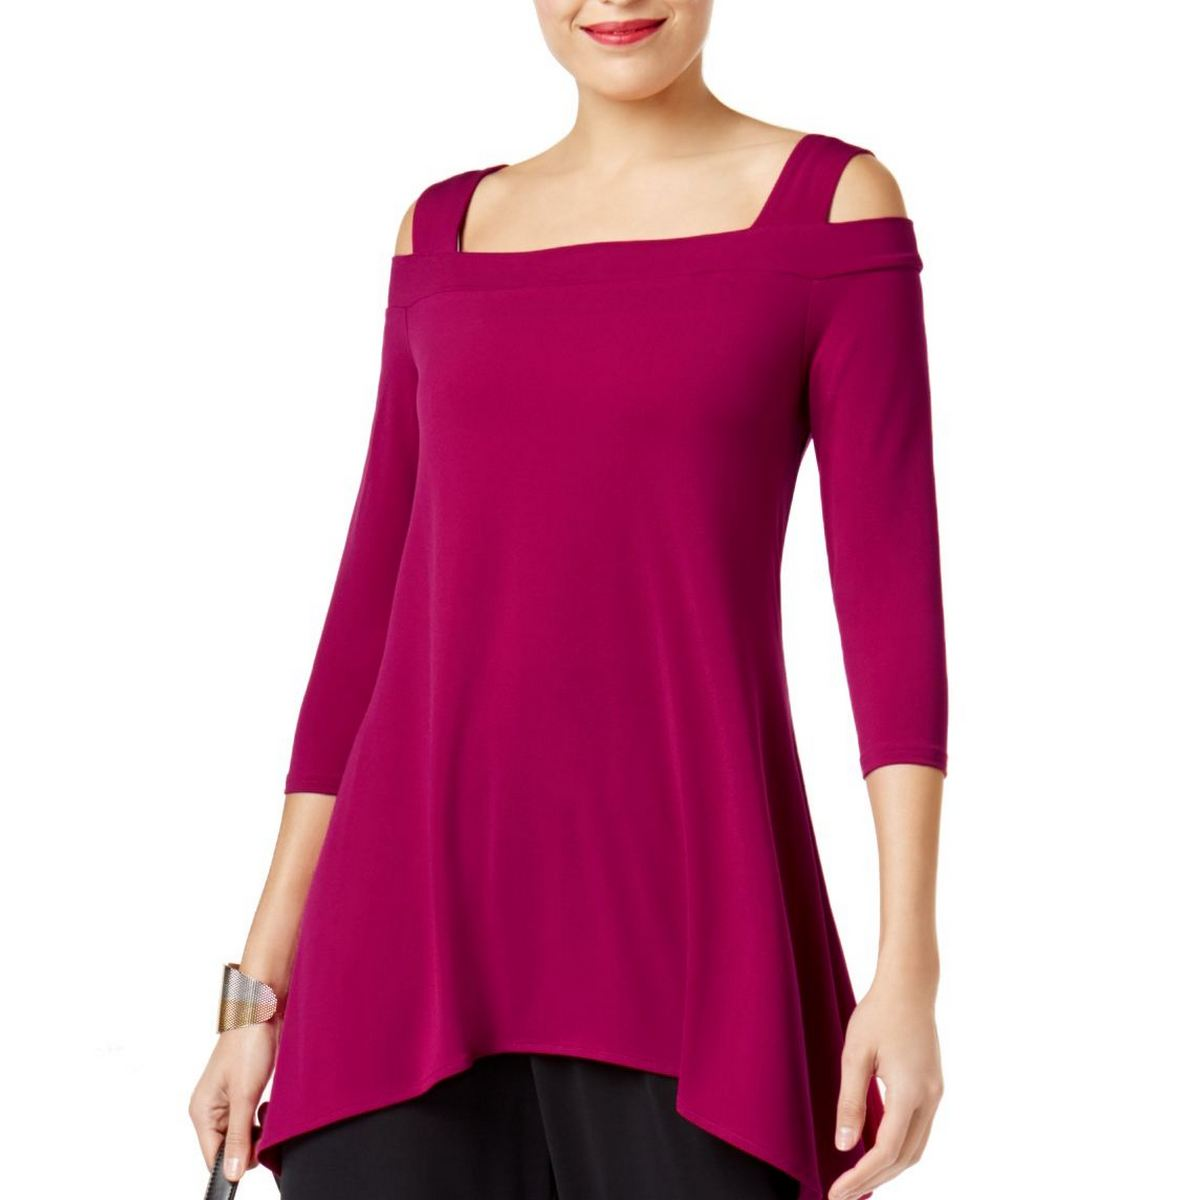 5812867a199 Details about ALFANI Women's Magenta Jersey Cold Shoulder Pullover High-low  Tunic Top XL TEDO